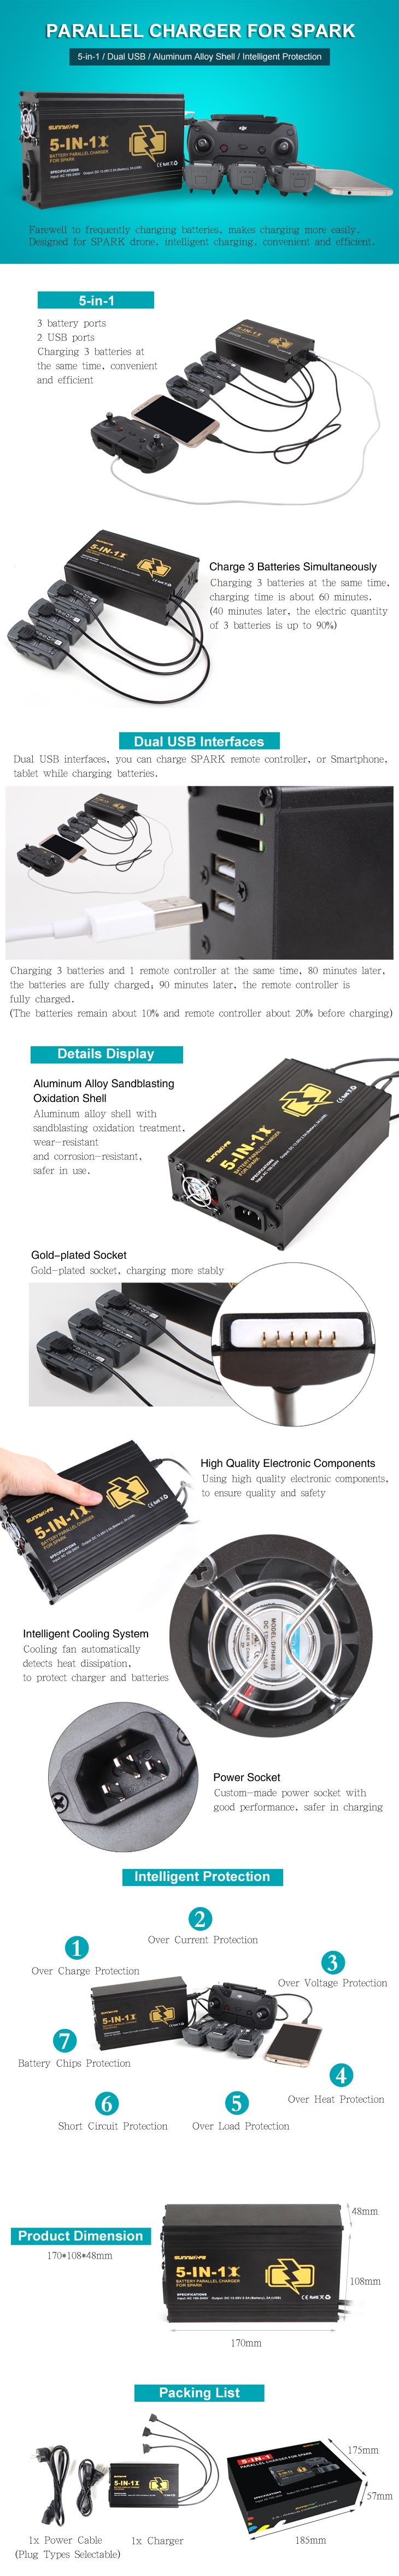 5 in 1 Multi Intelligent Parallel Charger Battery & Transmitter Dual USB Charger For DJI Spark